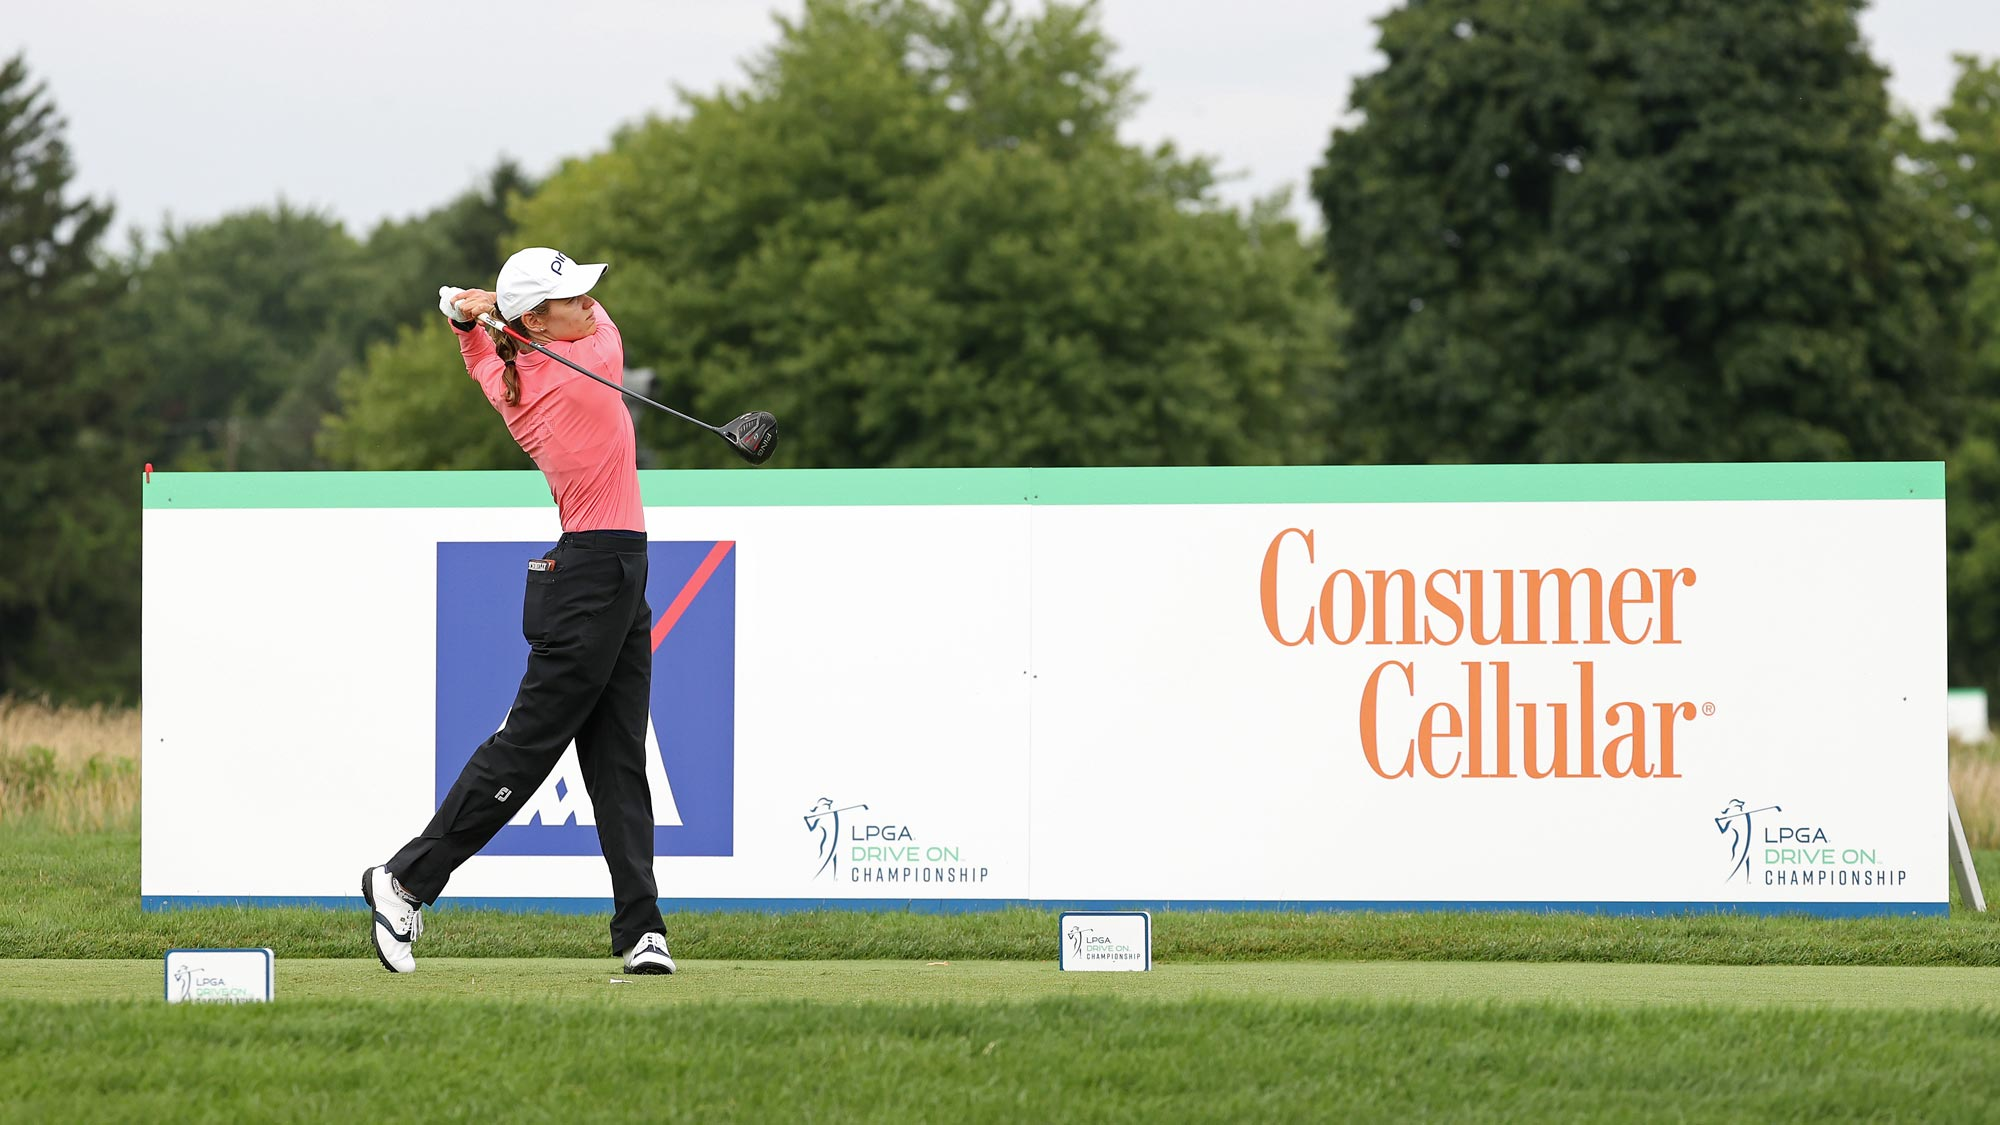 Sarah Schmelzel plays her shot from the 14th tee during the final round of the LPGA Drive On Championship